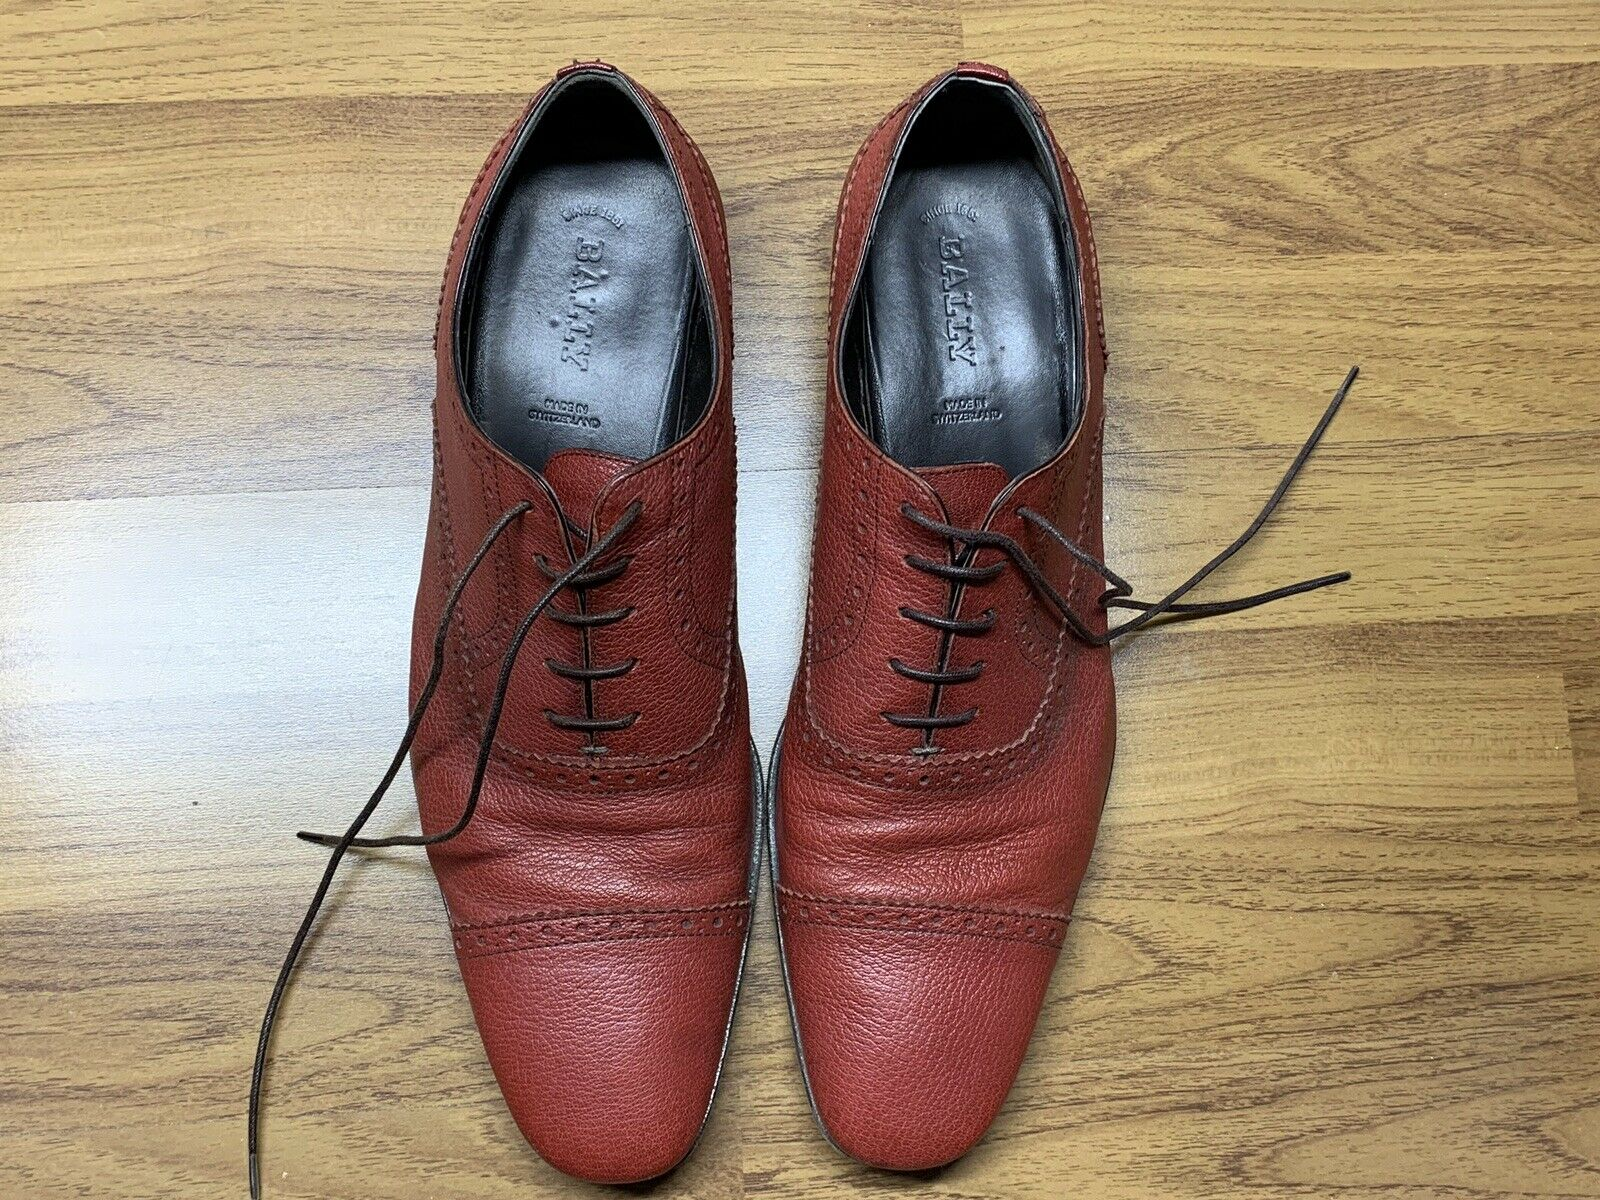 Red bally mens shoes size 11 made in switzerland very rare high quality